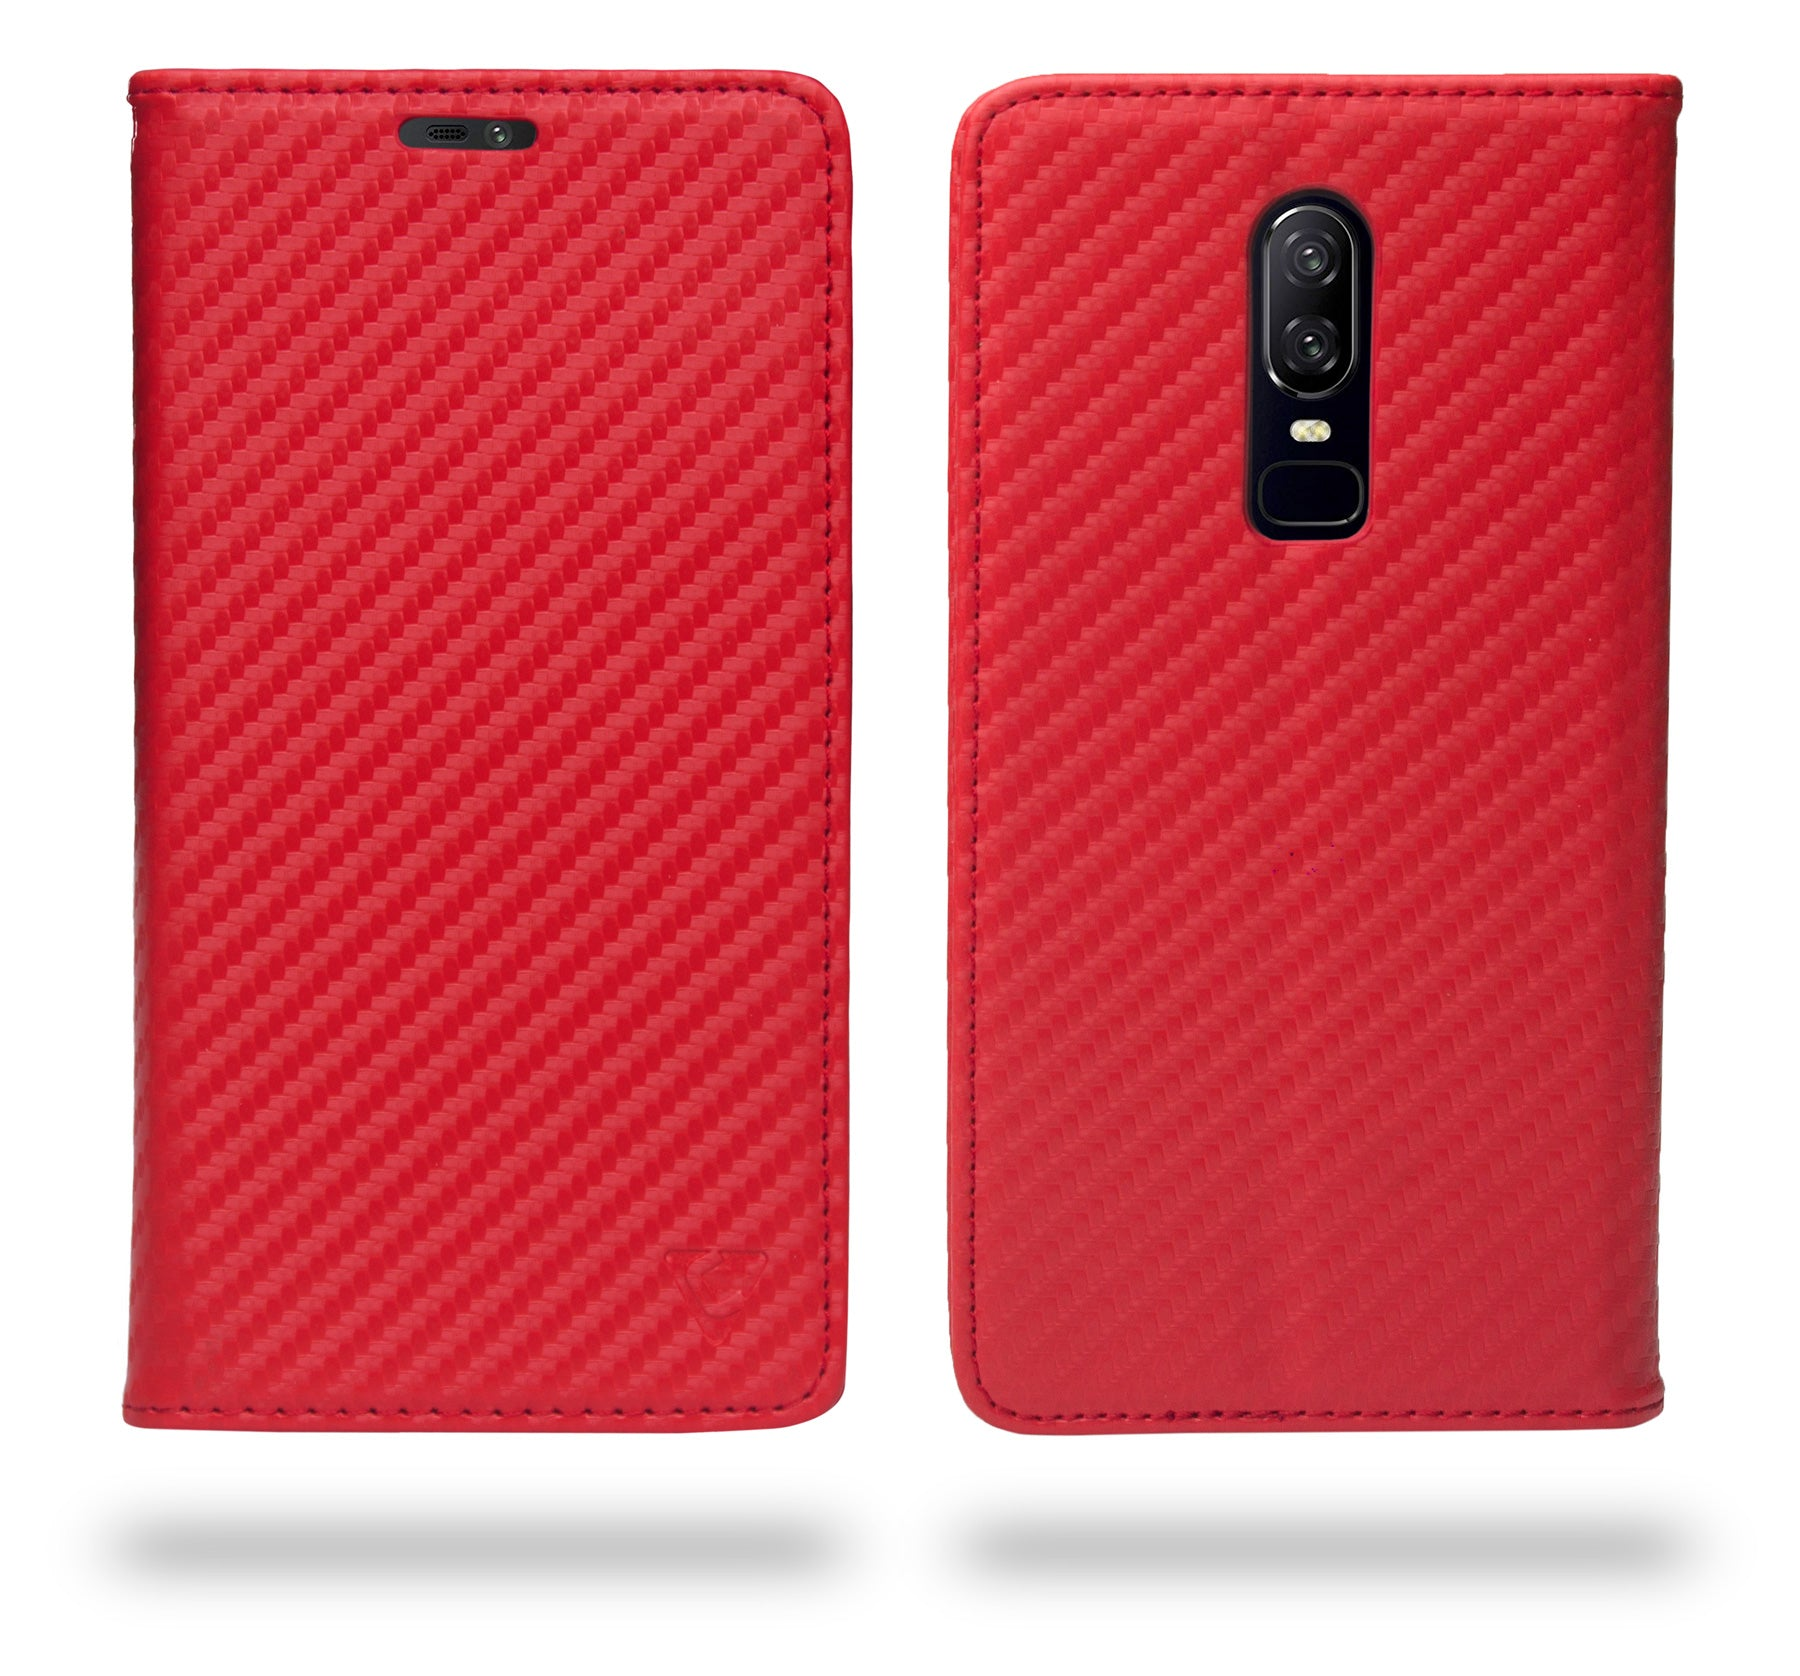 Ceego Compact Carbon Fiber Flip Cover for OnePlus 6 With Magnetic Lock (Scorching Red)